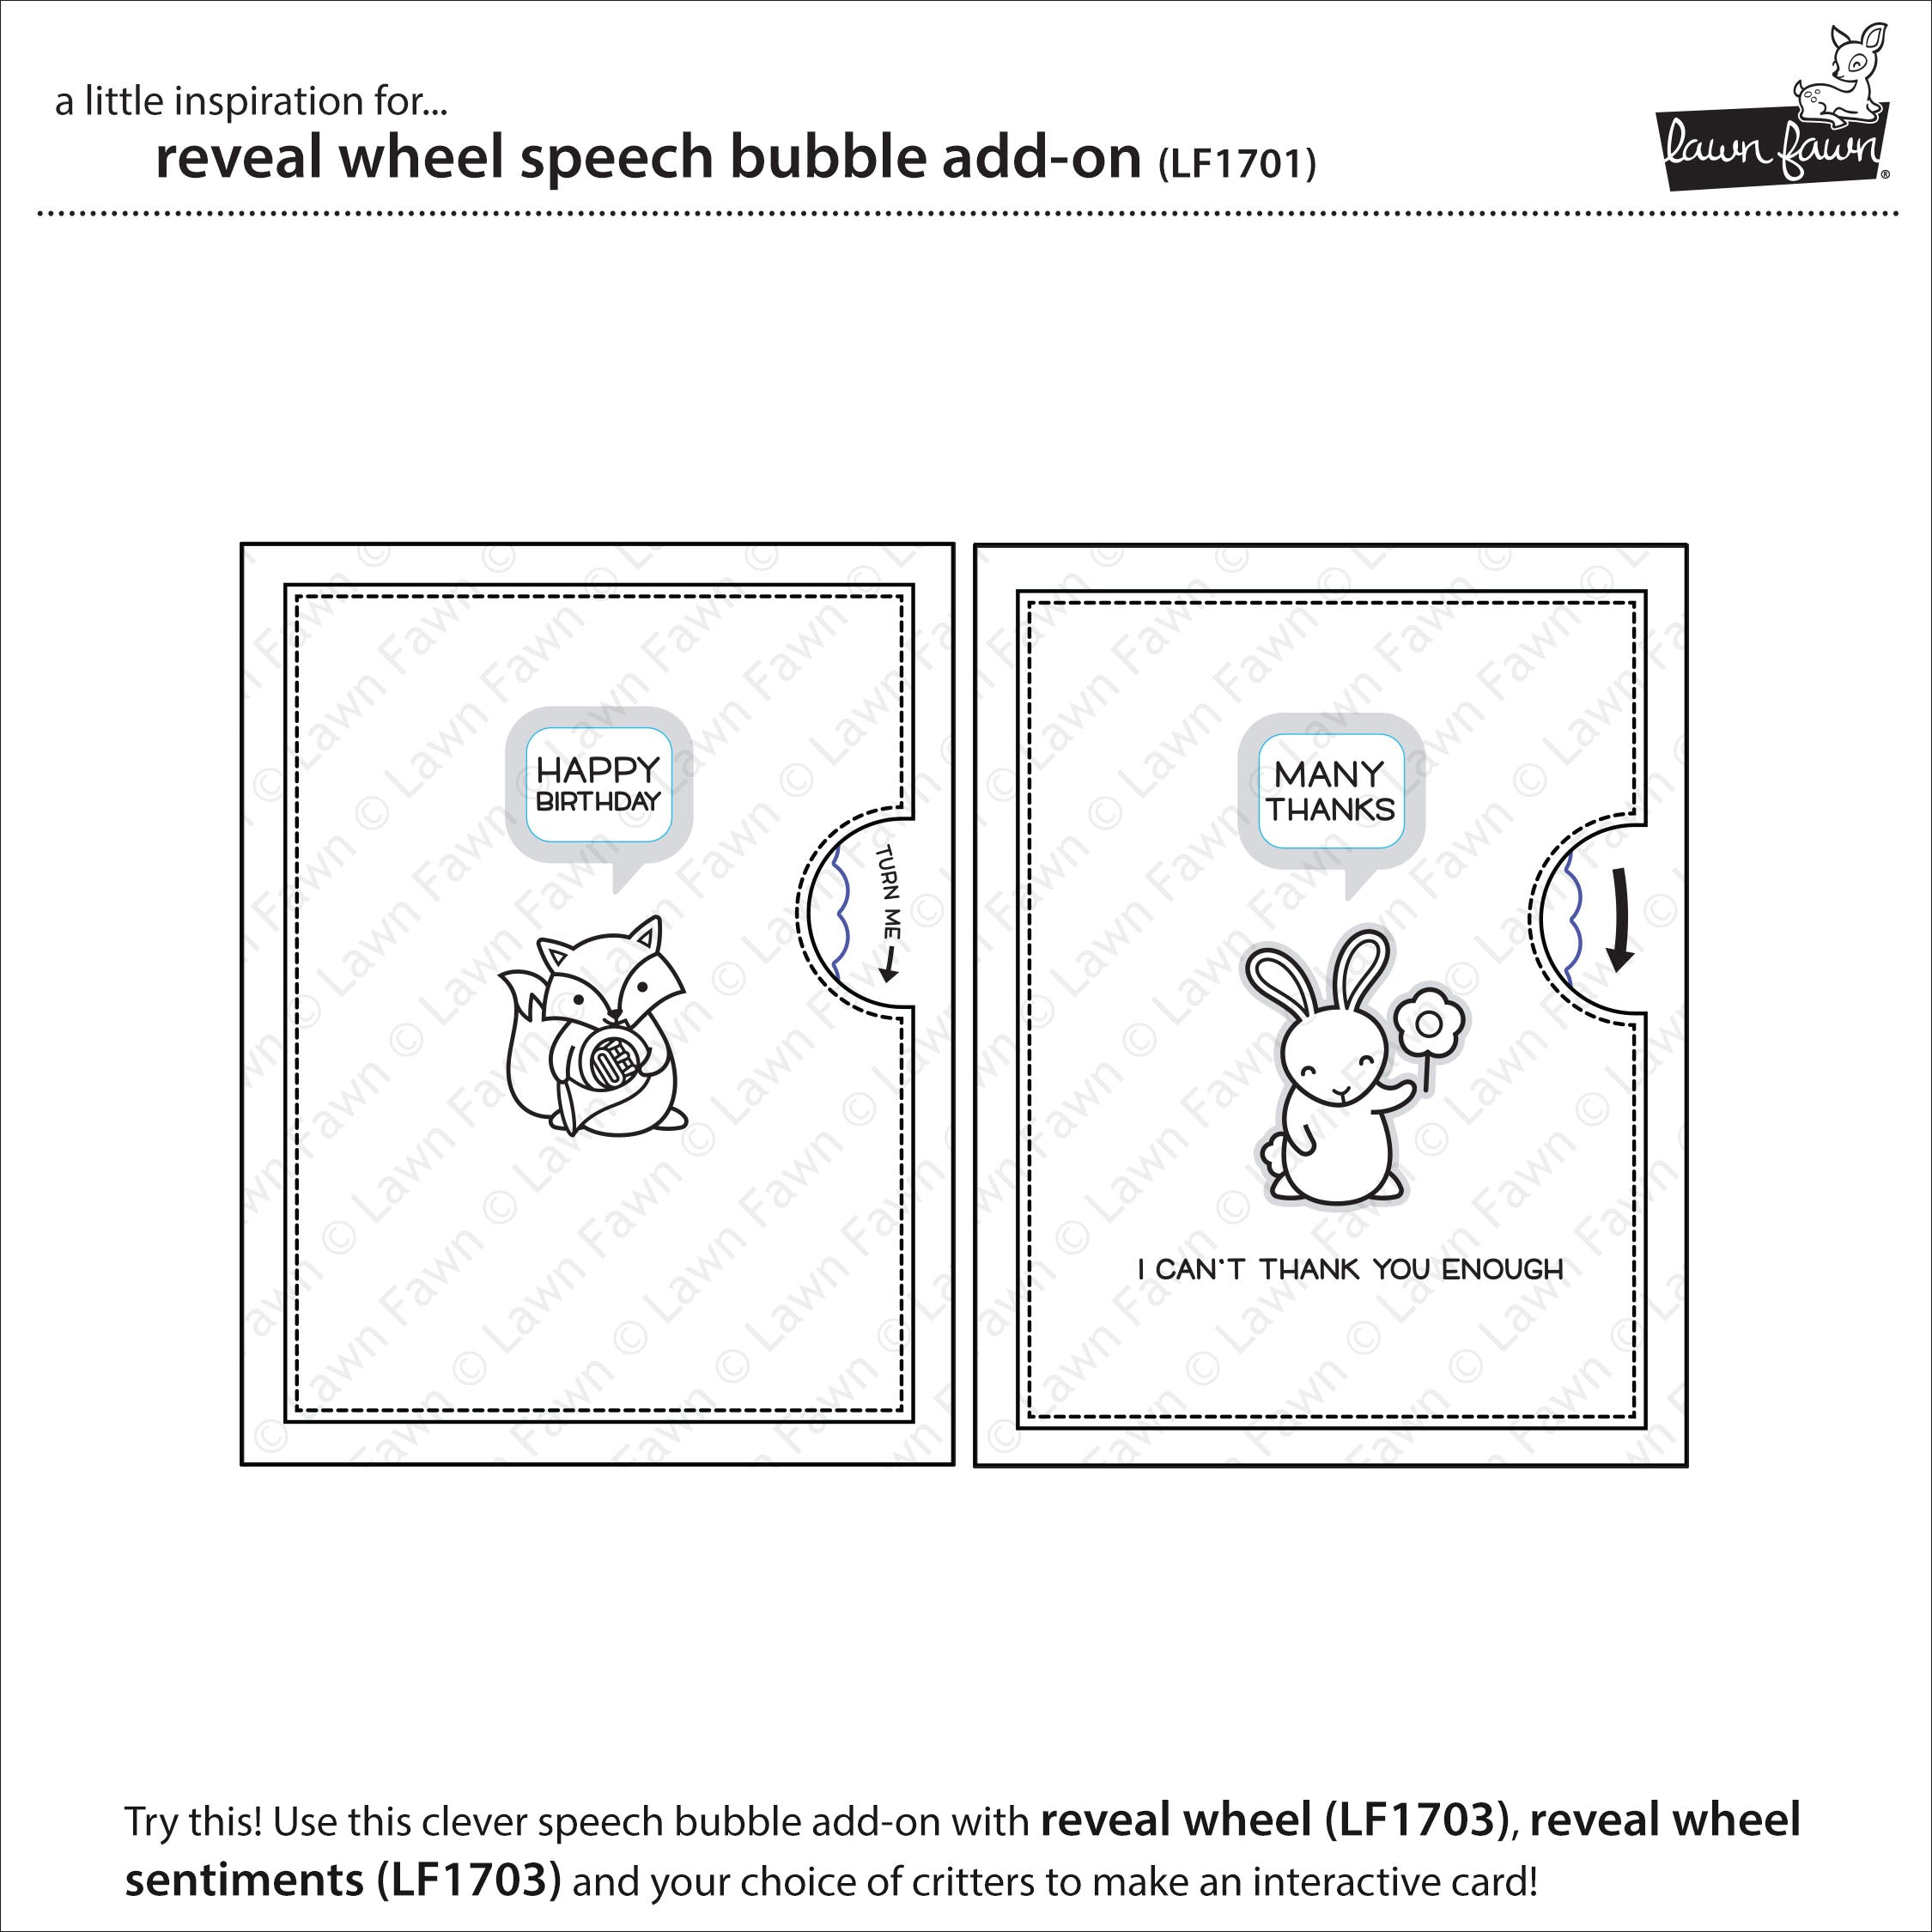 reveal wheel speech bubble add-on